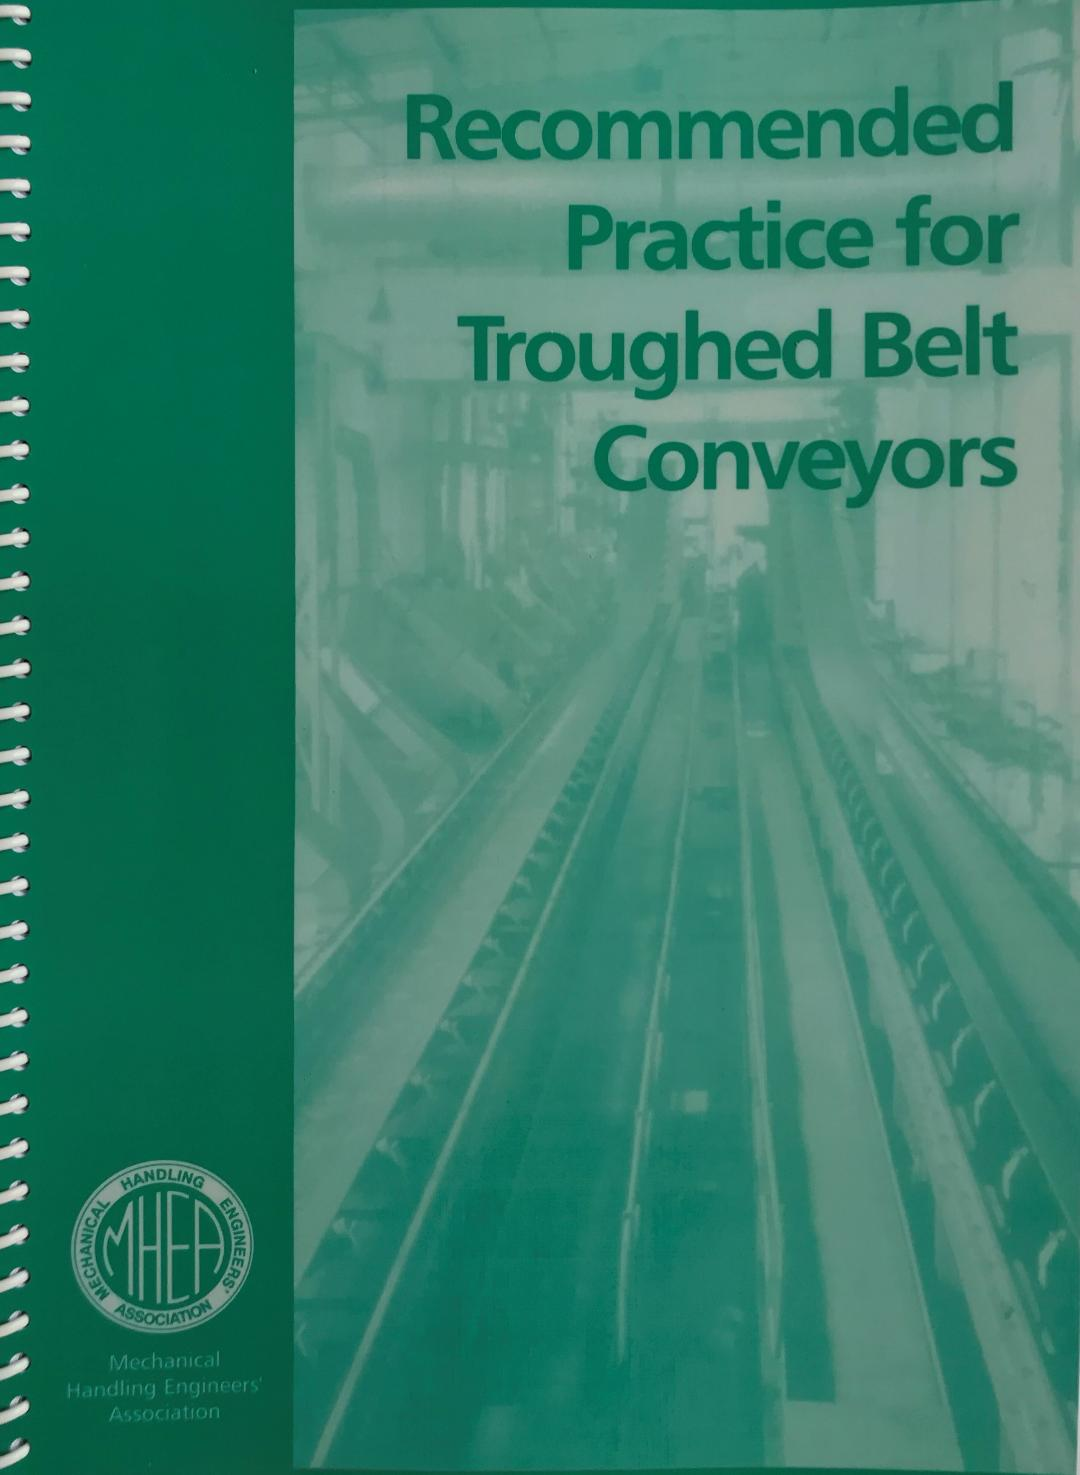 Non UK Purchases – Recommended Practice For Trough Belt Conveyors